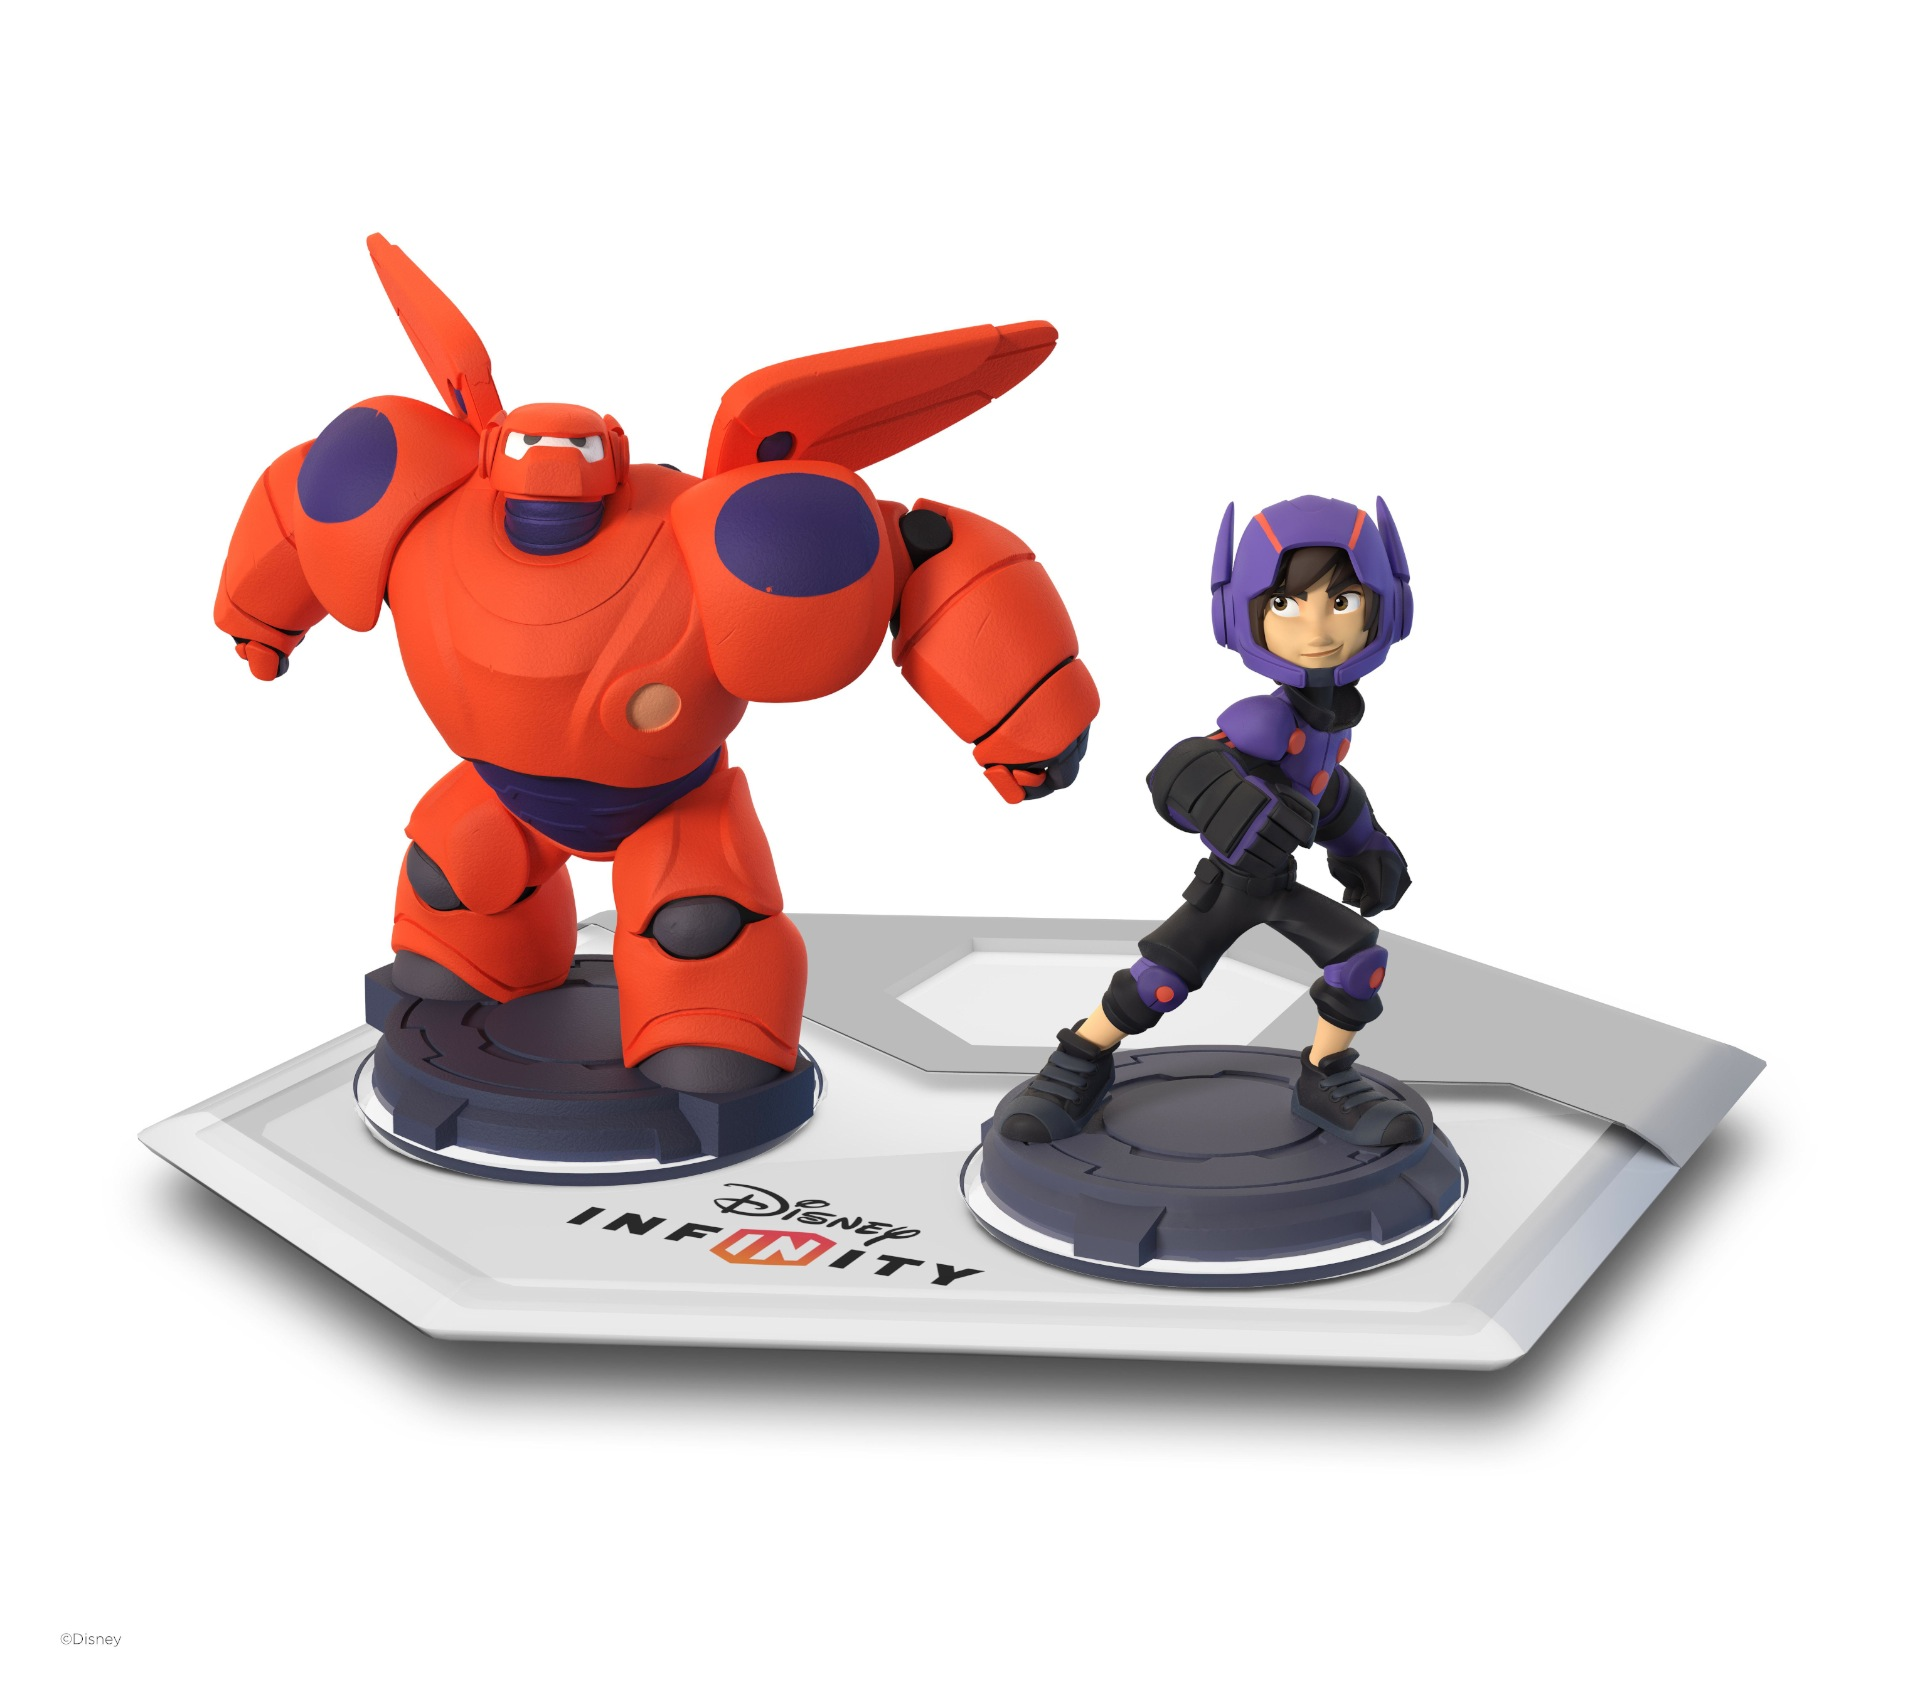 Disney Infinity 2.0 Edition To Welcome 'Big Hero 6' Play